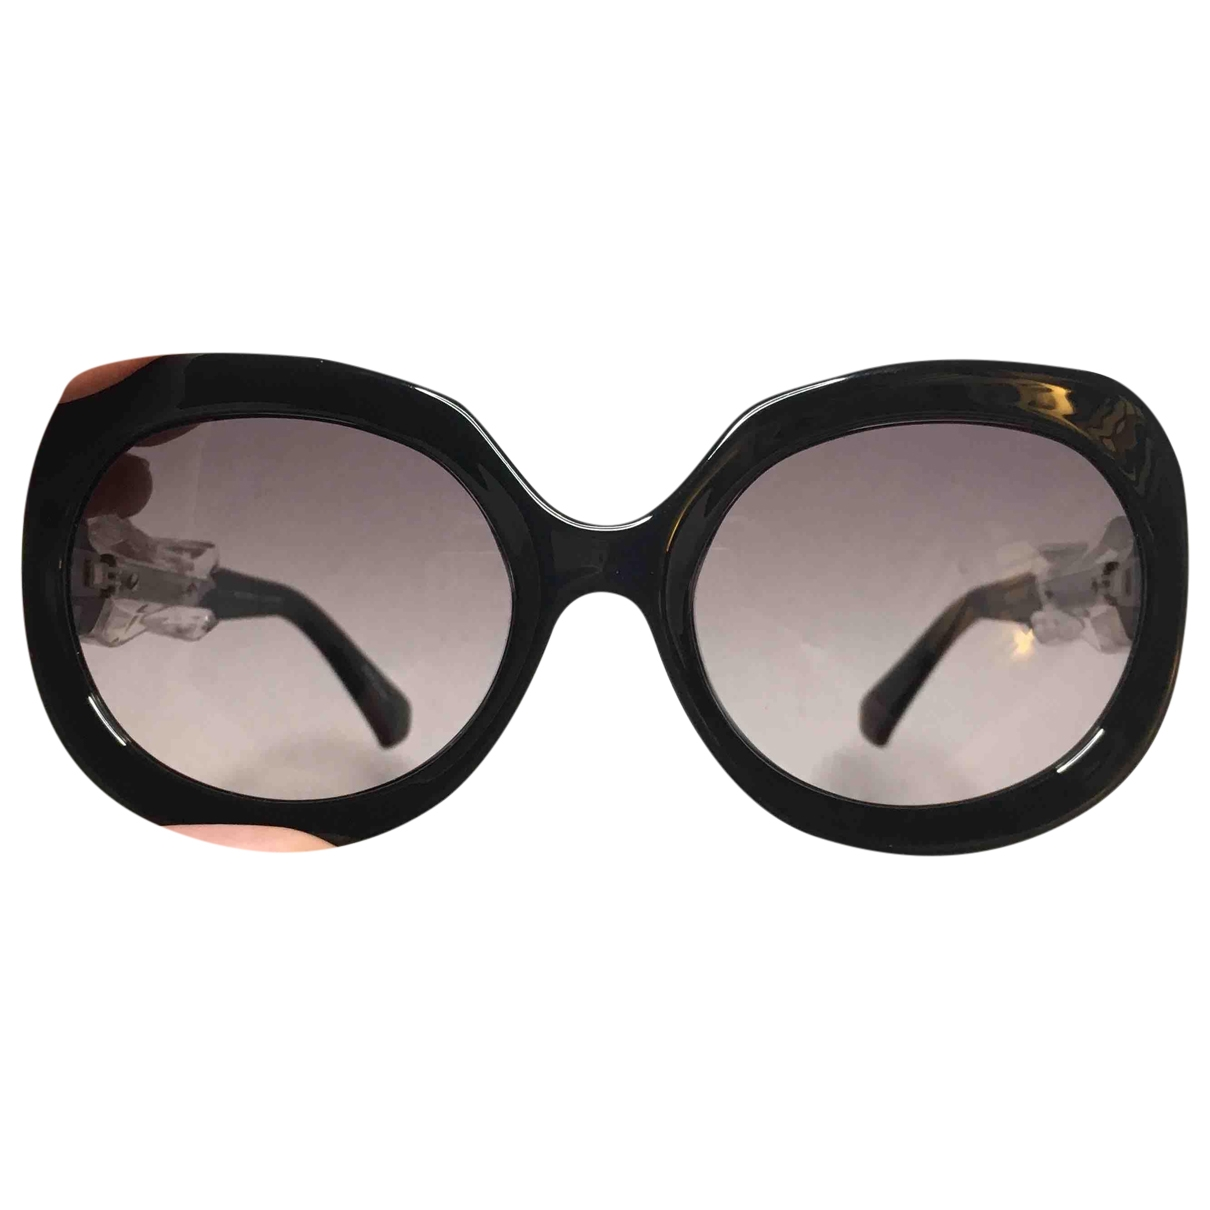 Emilio Pucci \N Black Sunglasses for Women \N